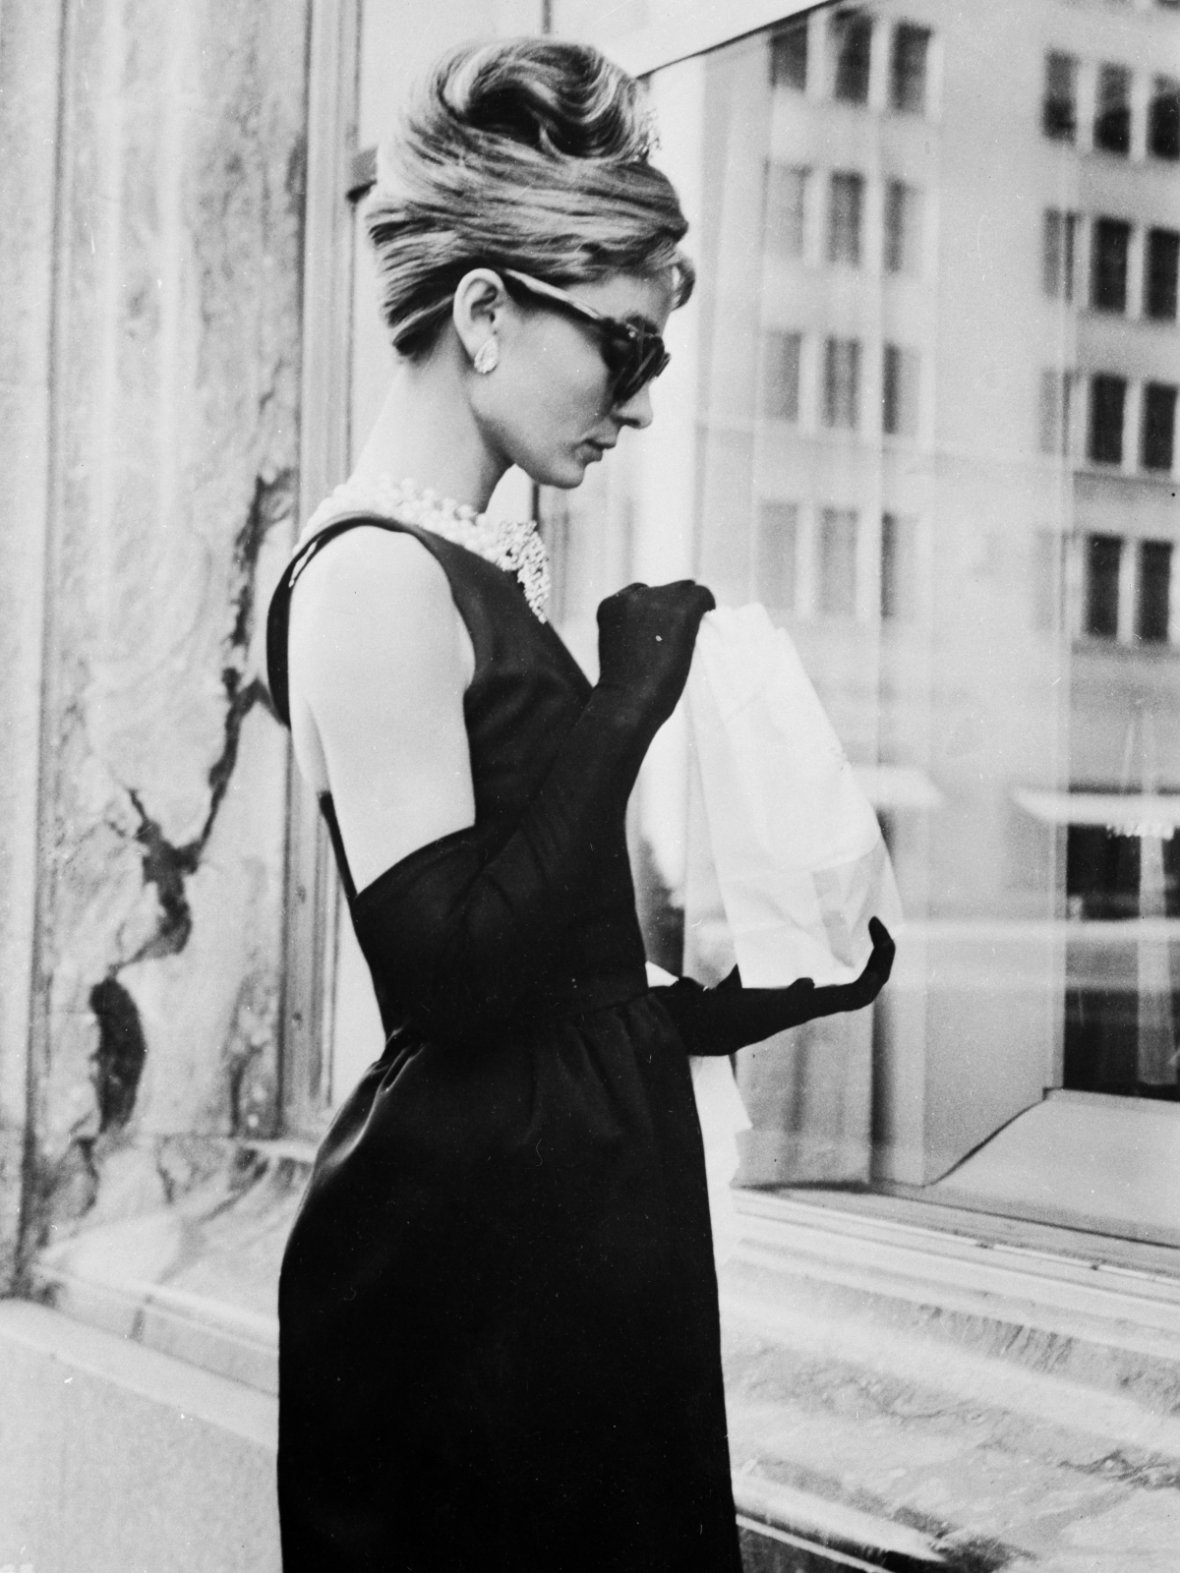 udrey Hepburn in New York during location filming for Breakfast At Tiffany\'s